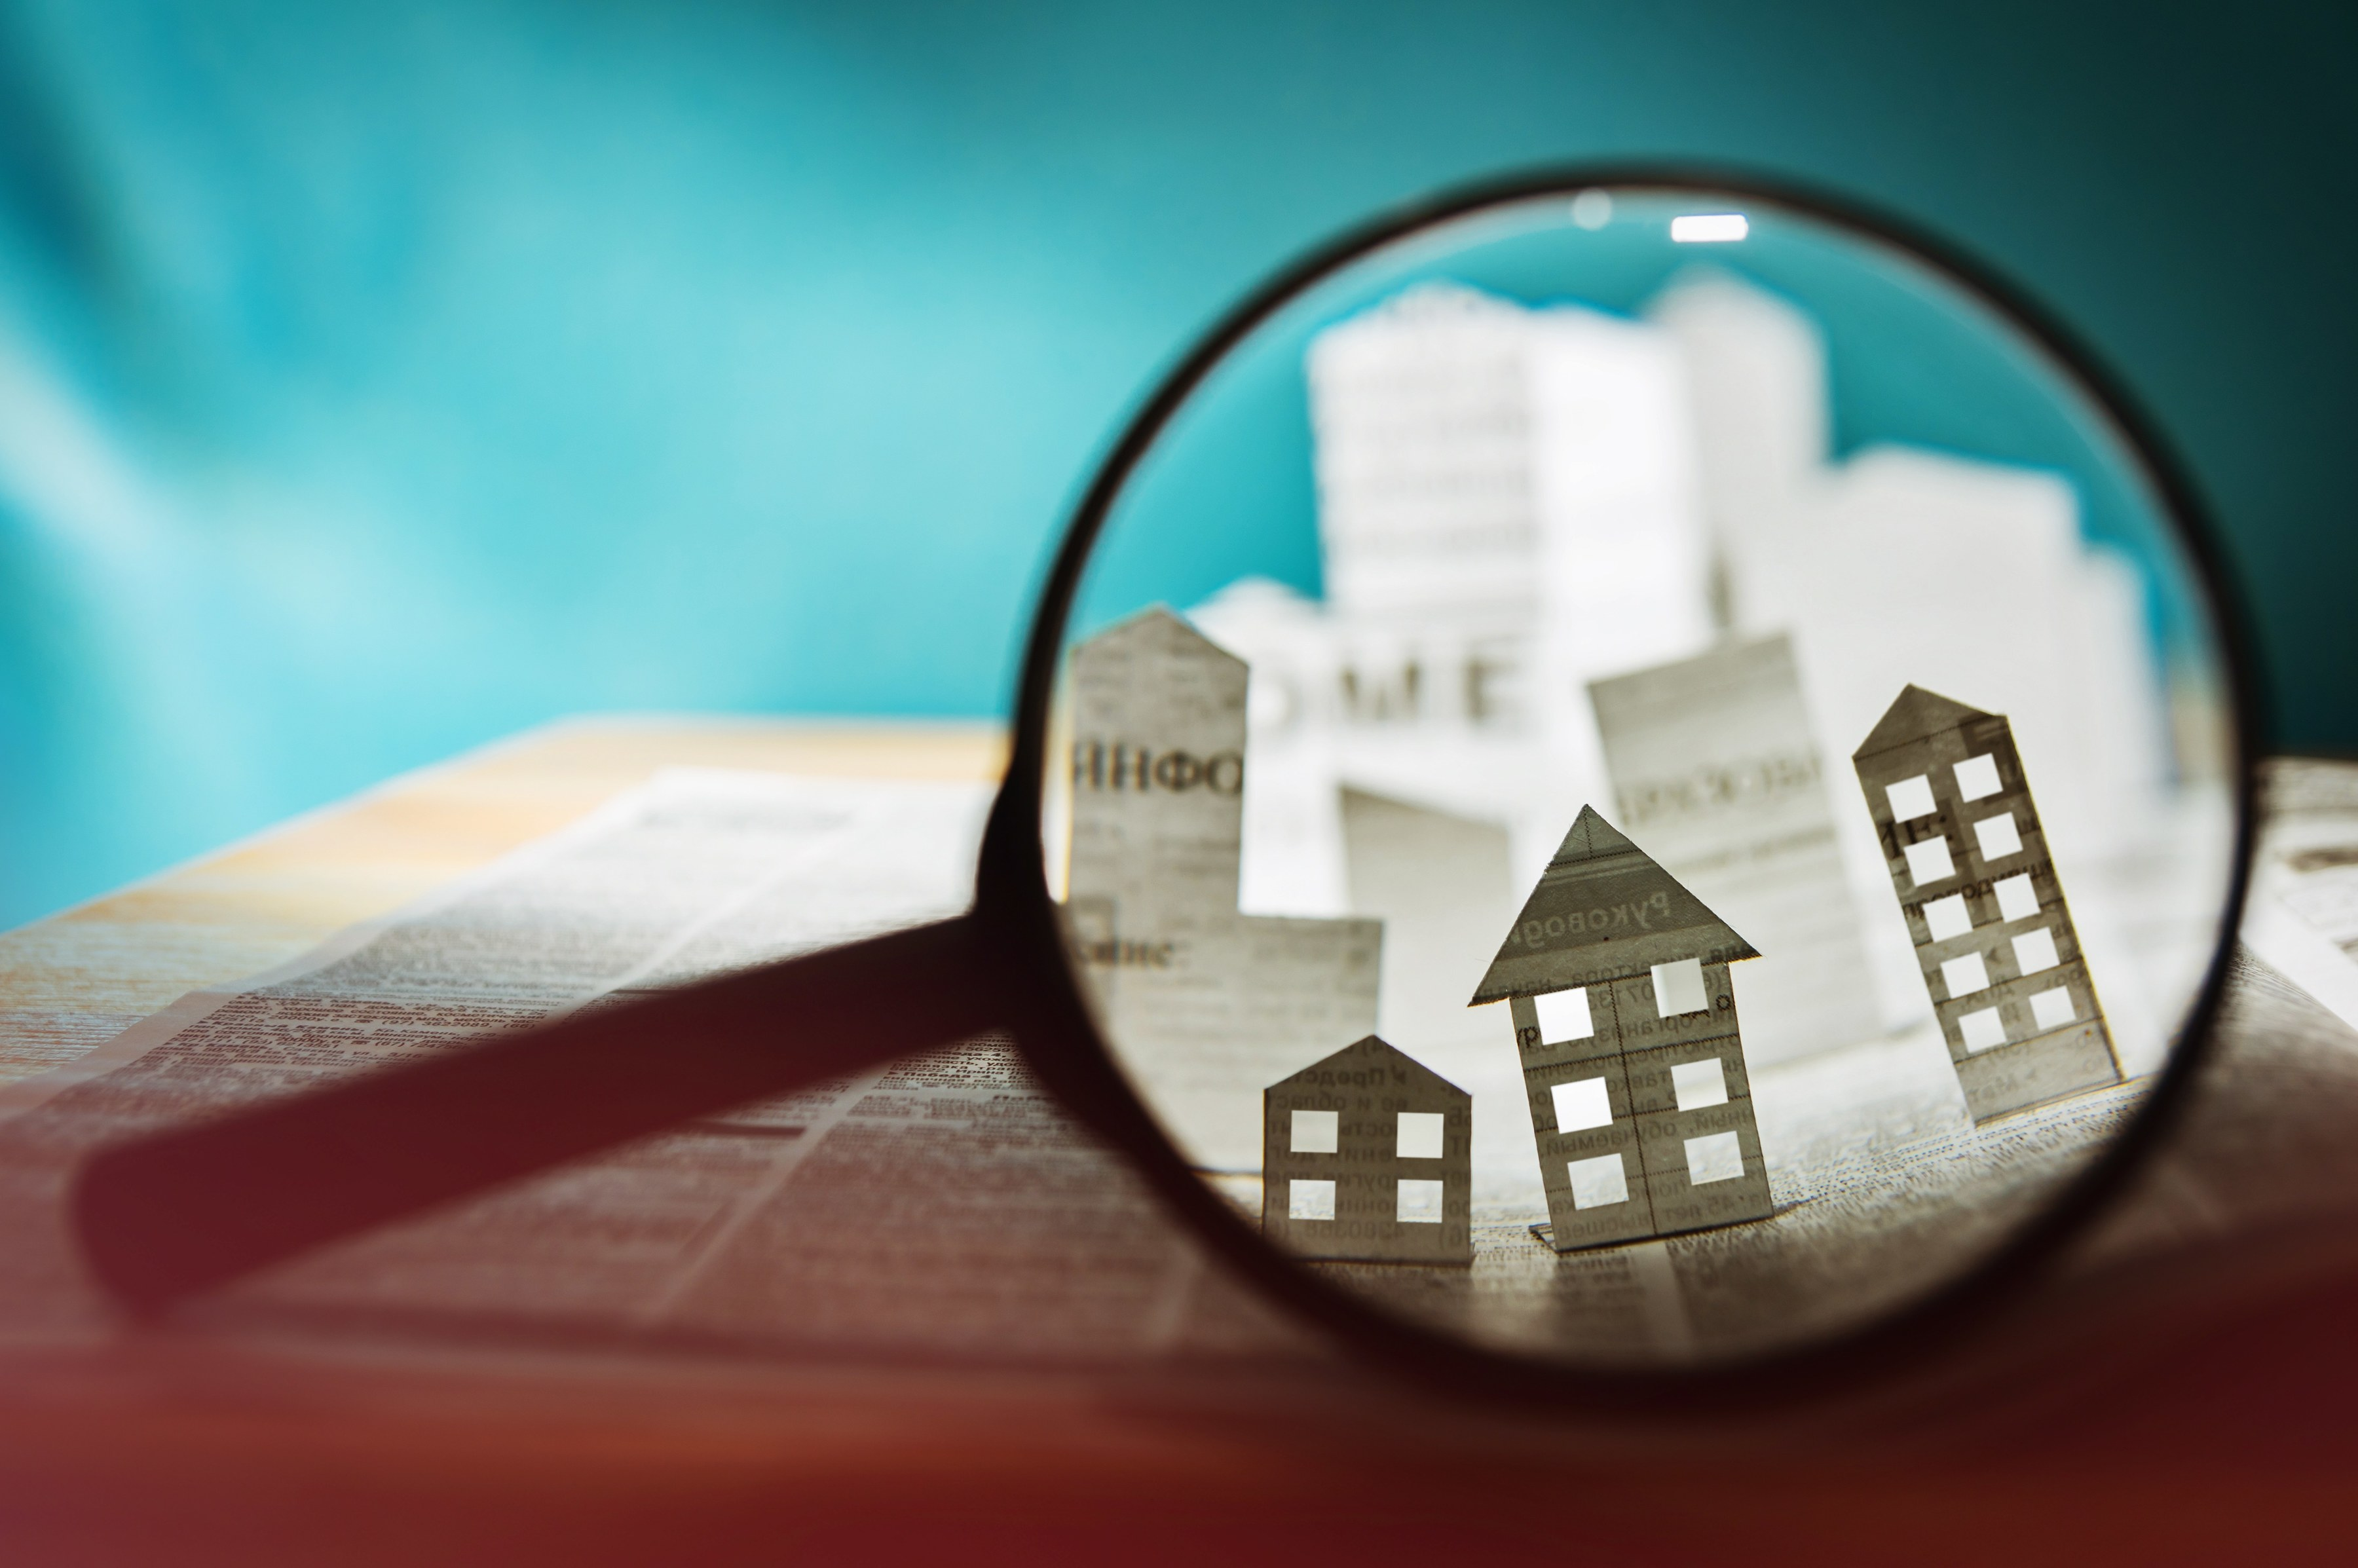 Houses Title Insurance - What is it and Why Necessary?